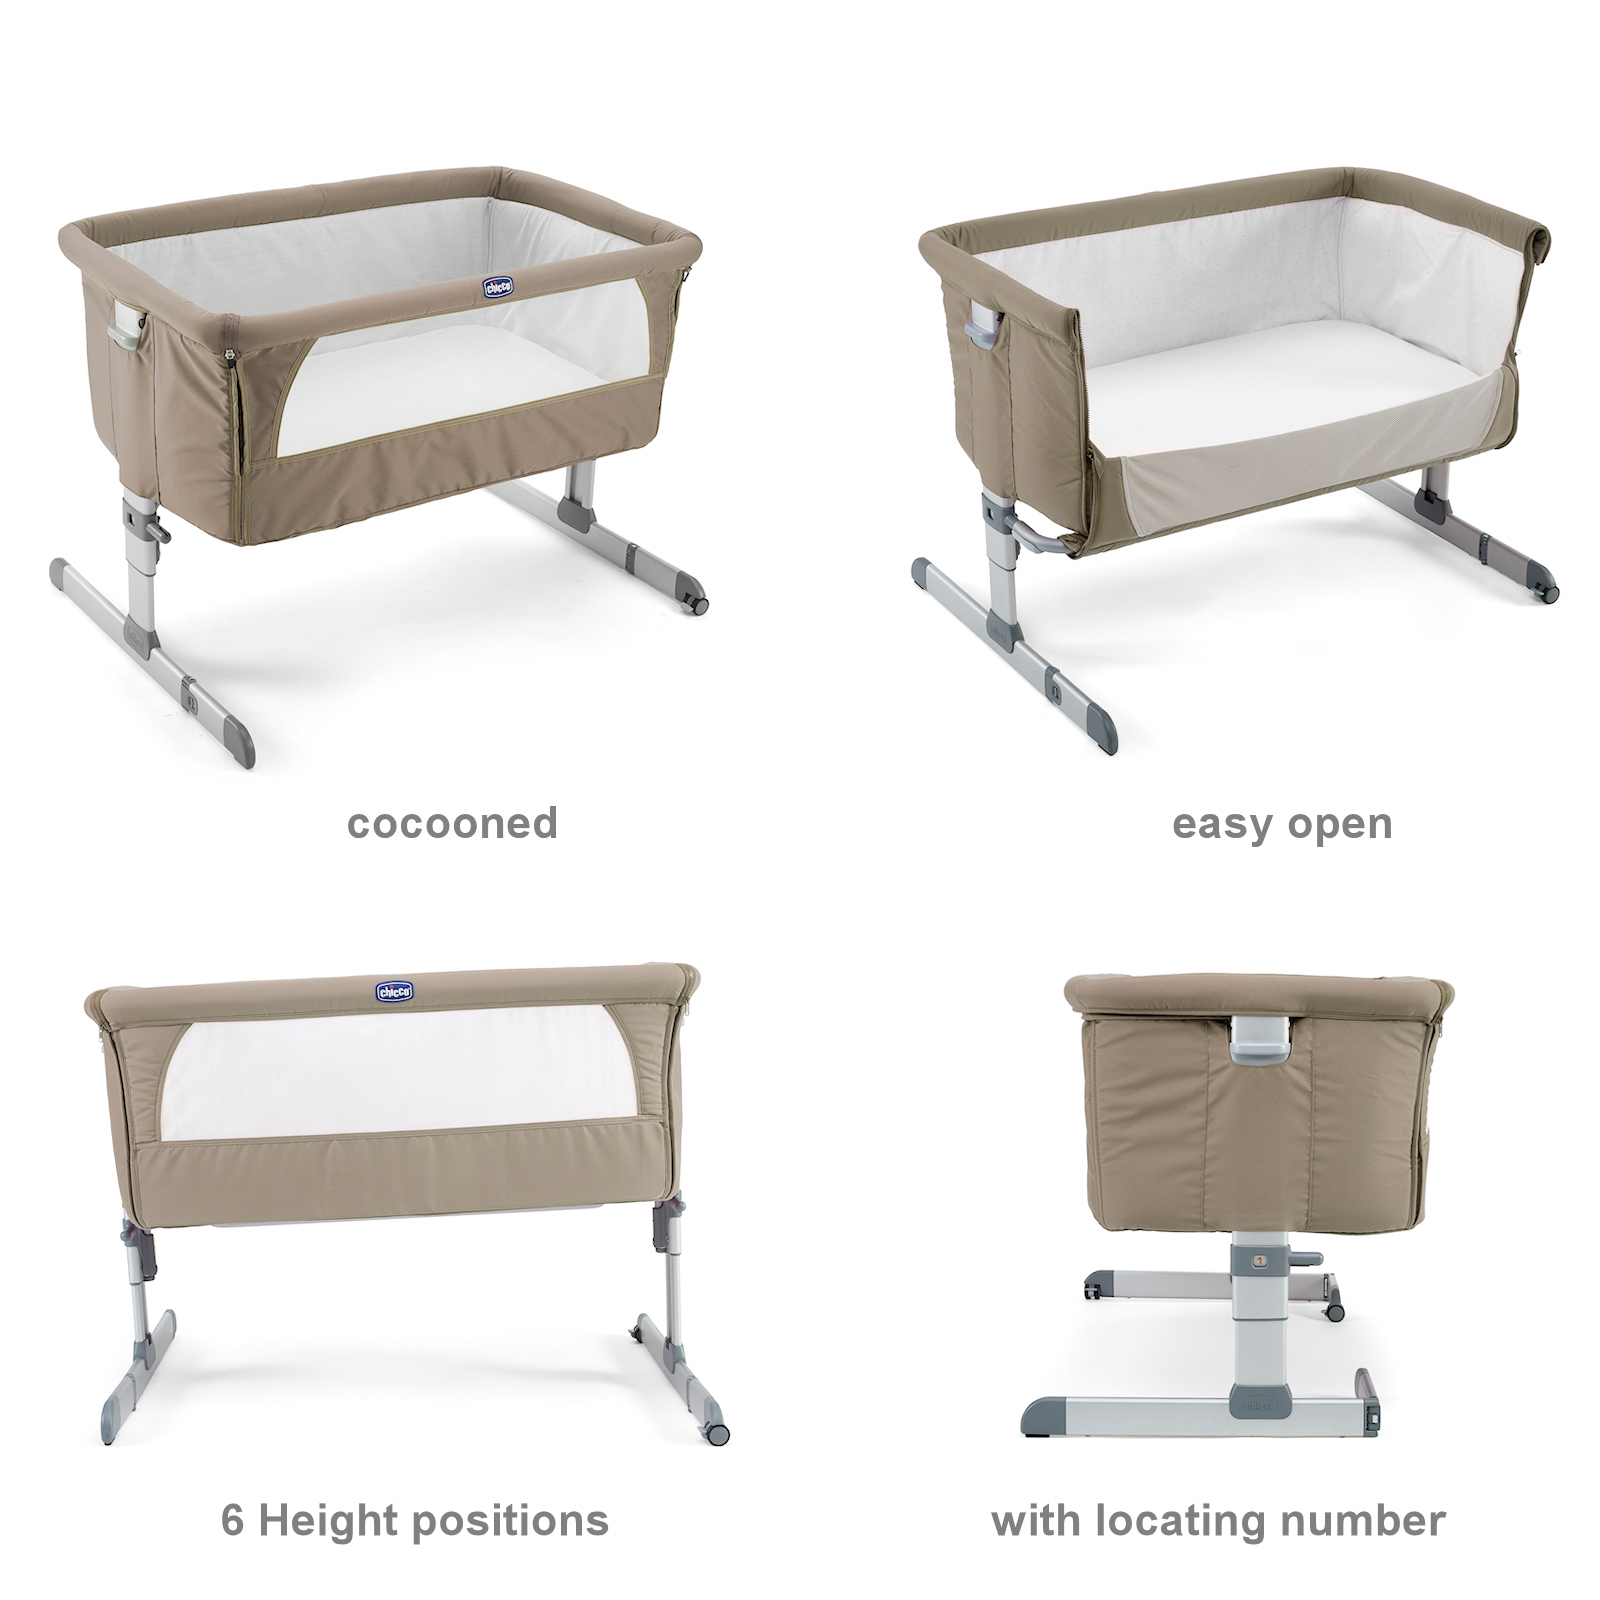 chicco dove grey next 2 me height adjustable baby crib. Black Bedroom Furniture Sets. Home Design Ideas